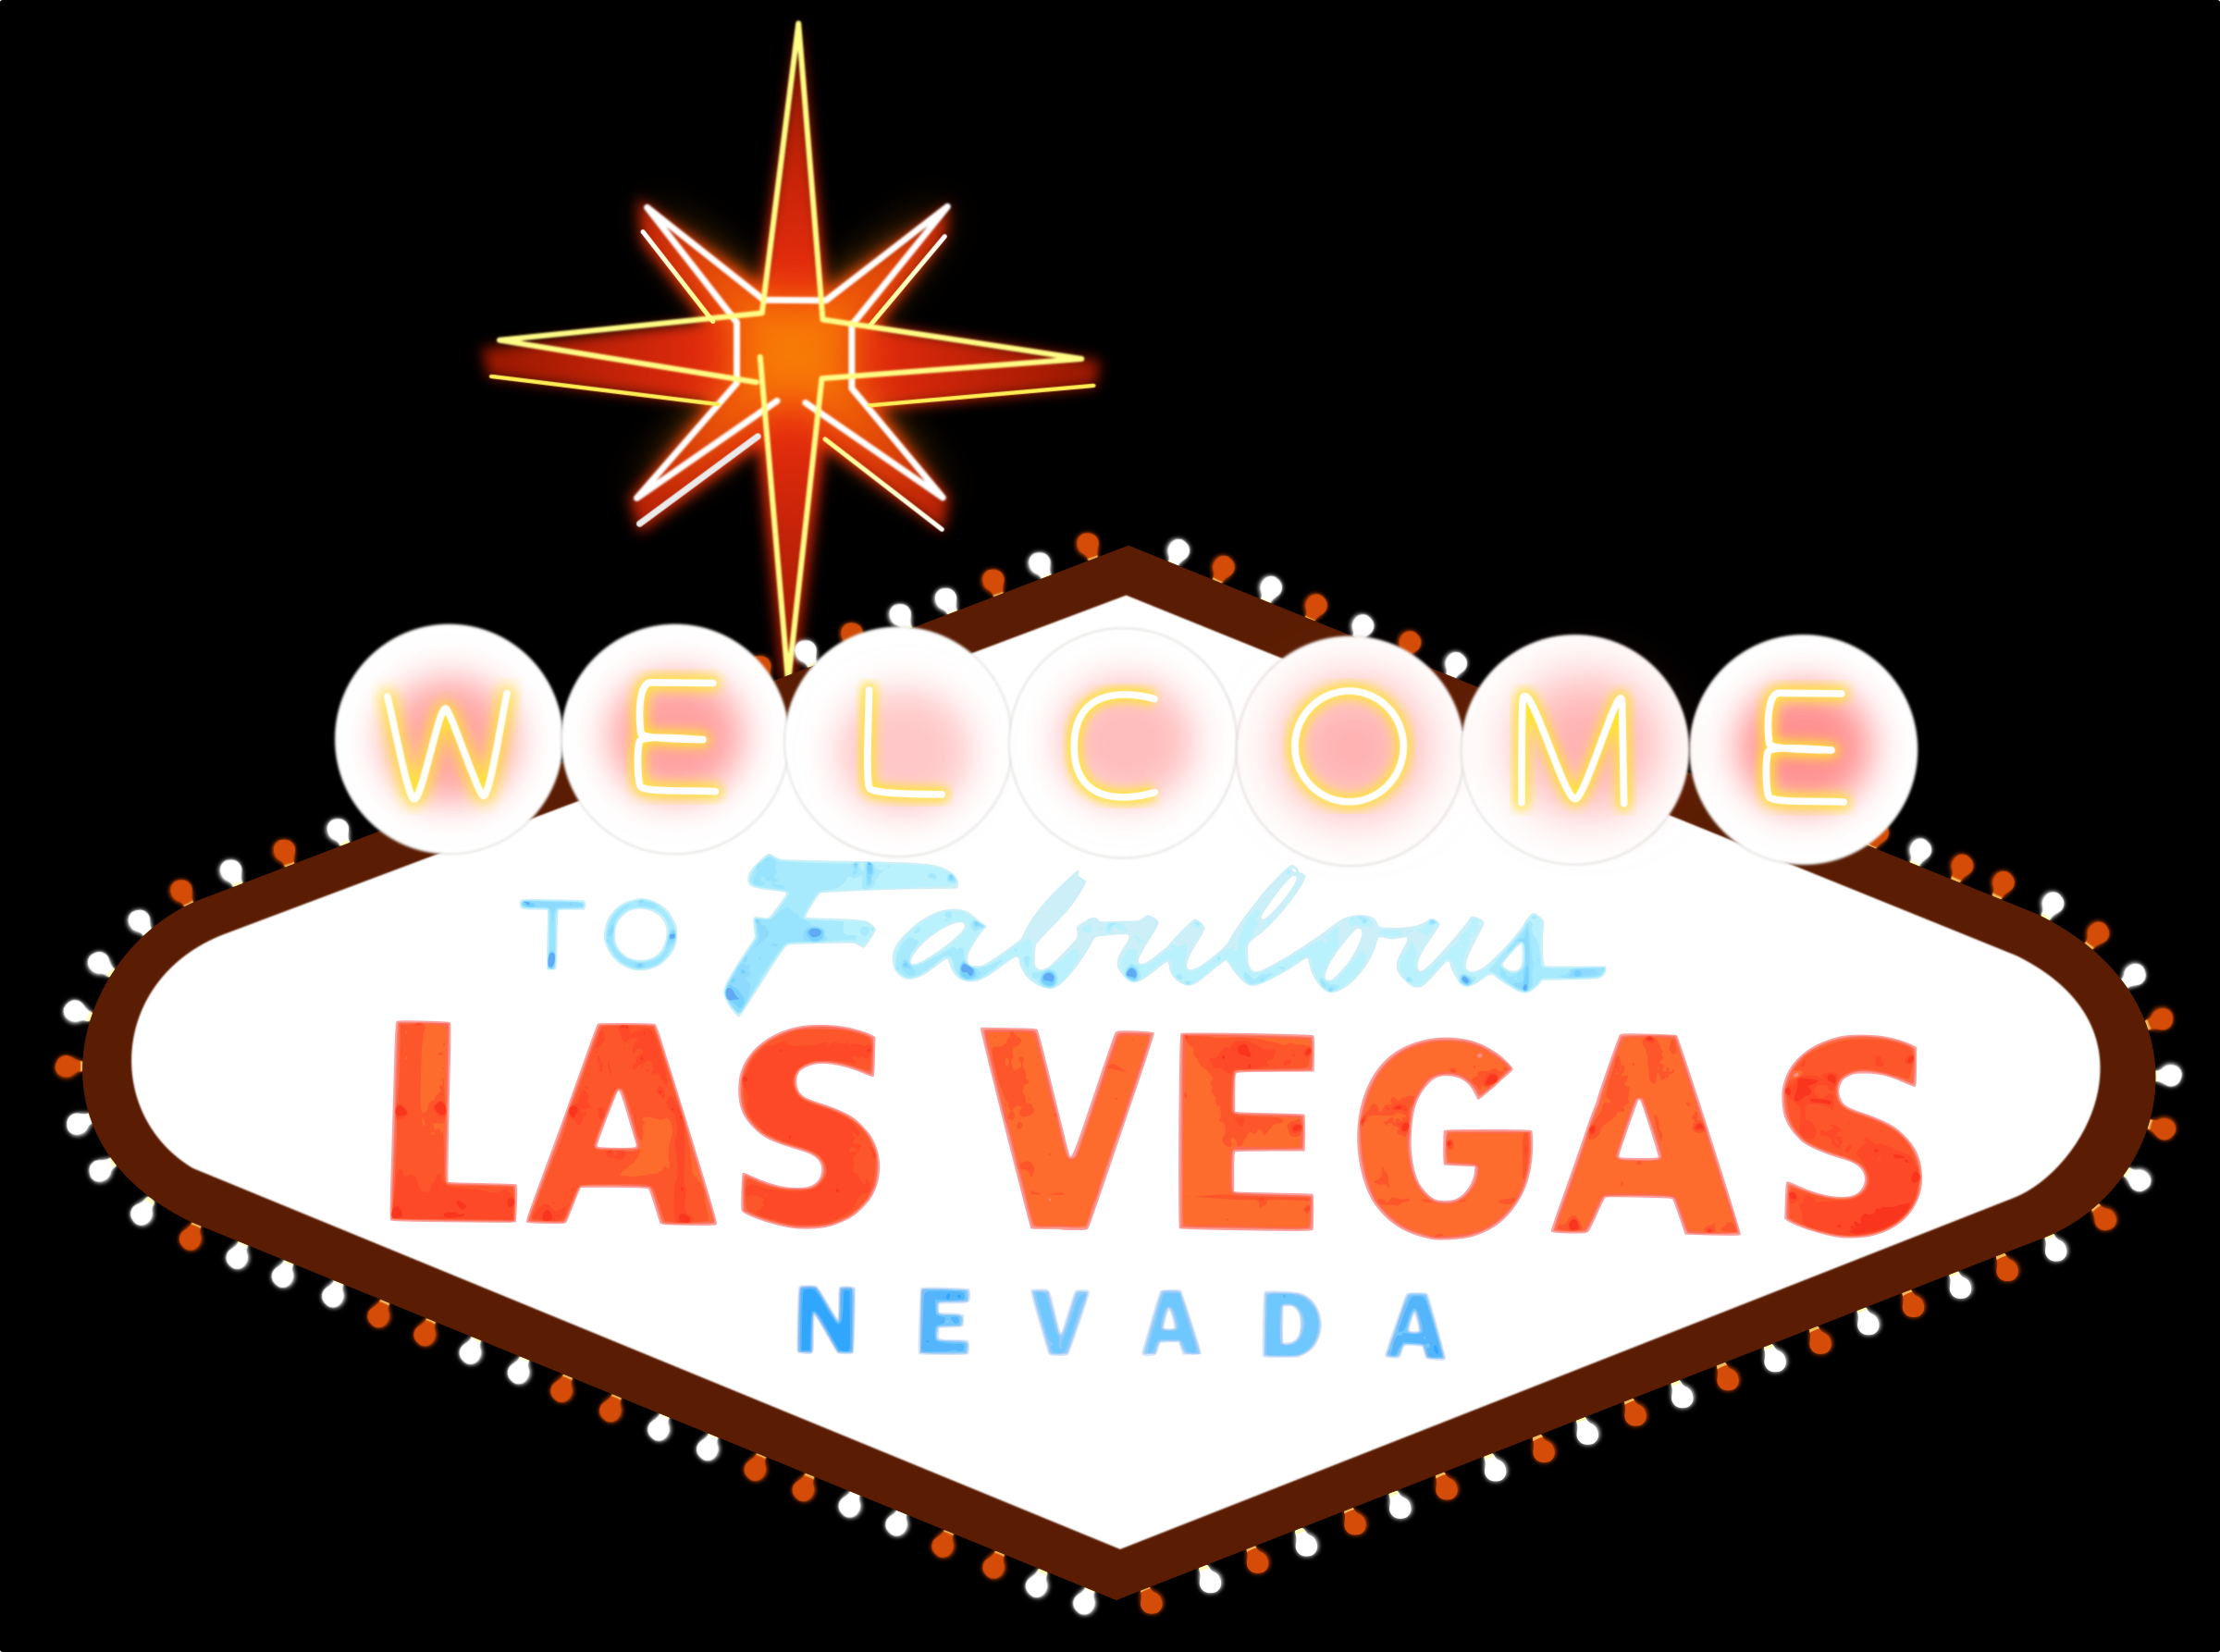 Las Vegas Sign by qurps